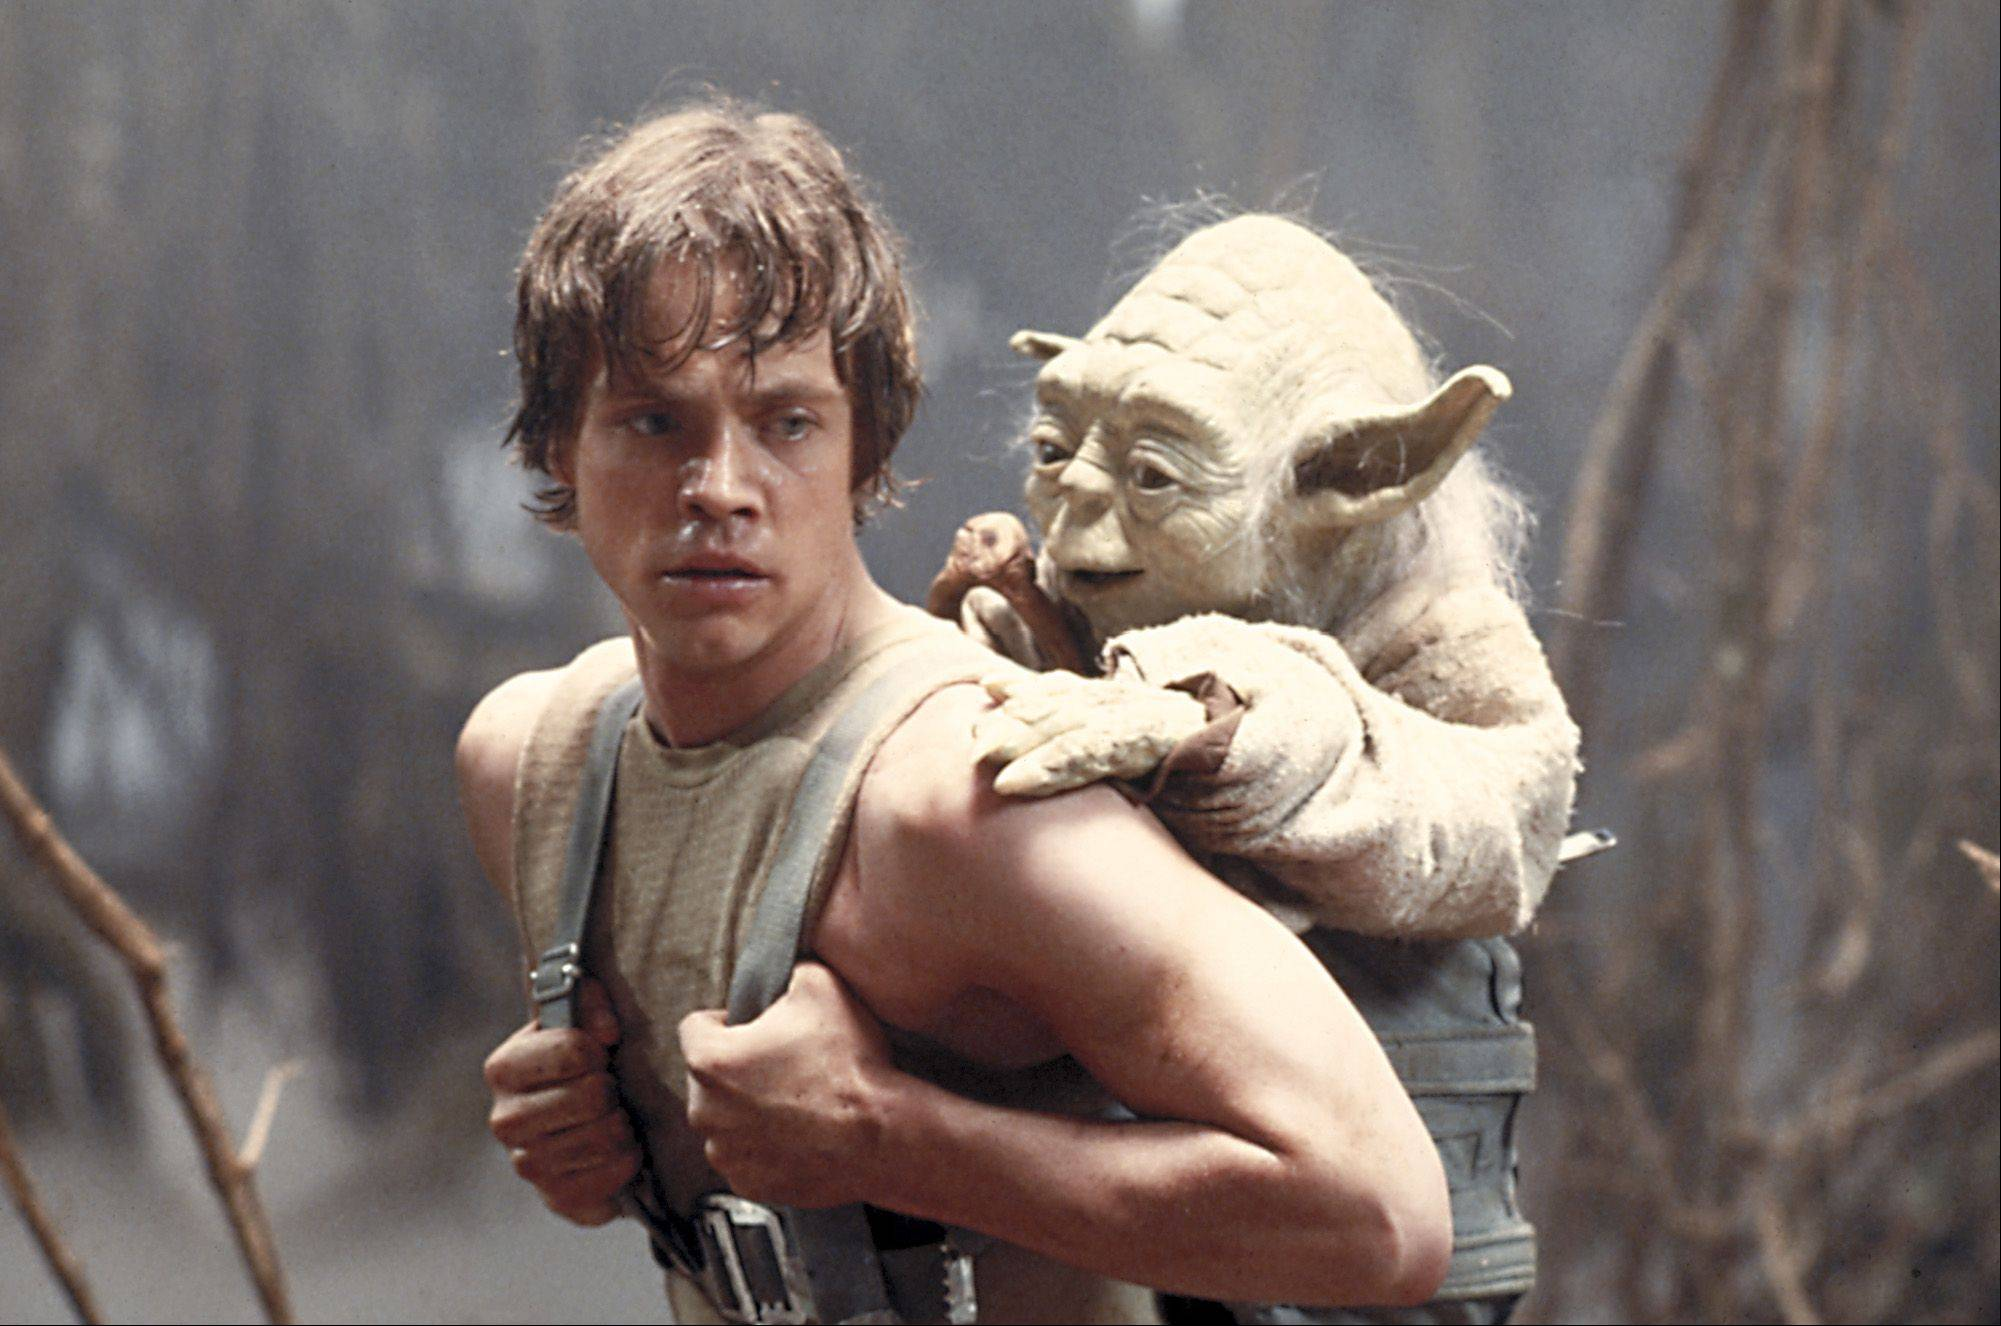 Mark Hamill as Luke Skywalker and the character Yoda appear in this scene from �Star Wars Episode V: The Empire Strikes Back.�